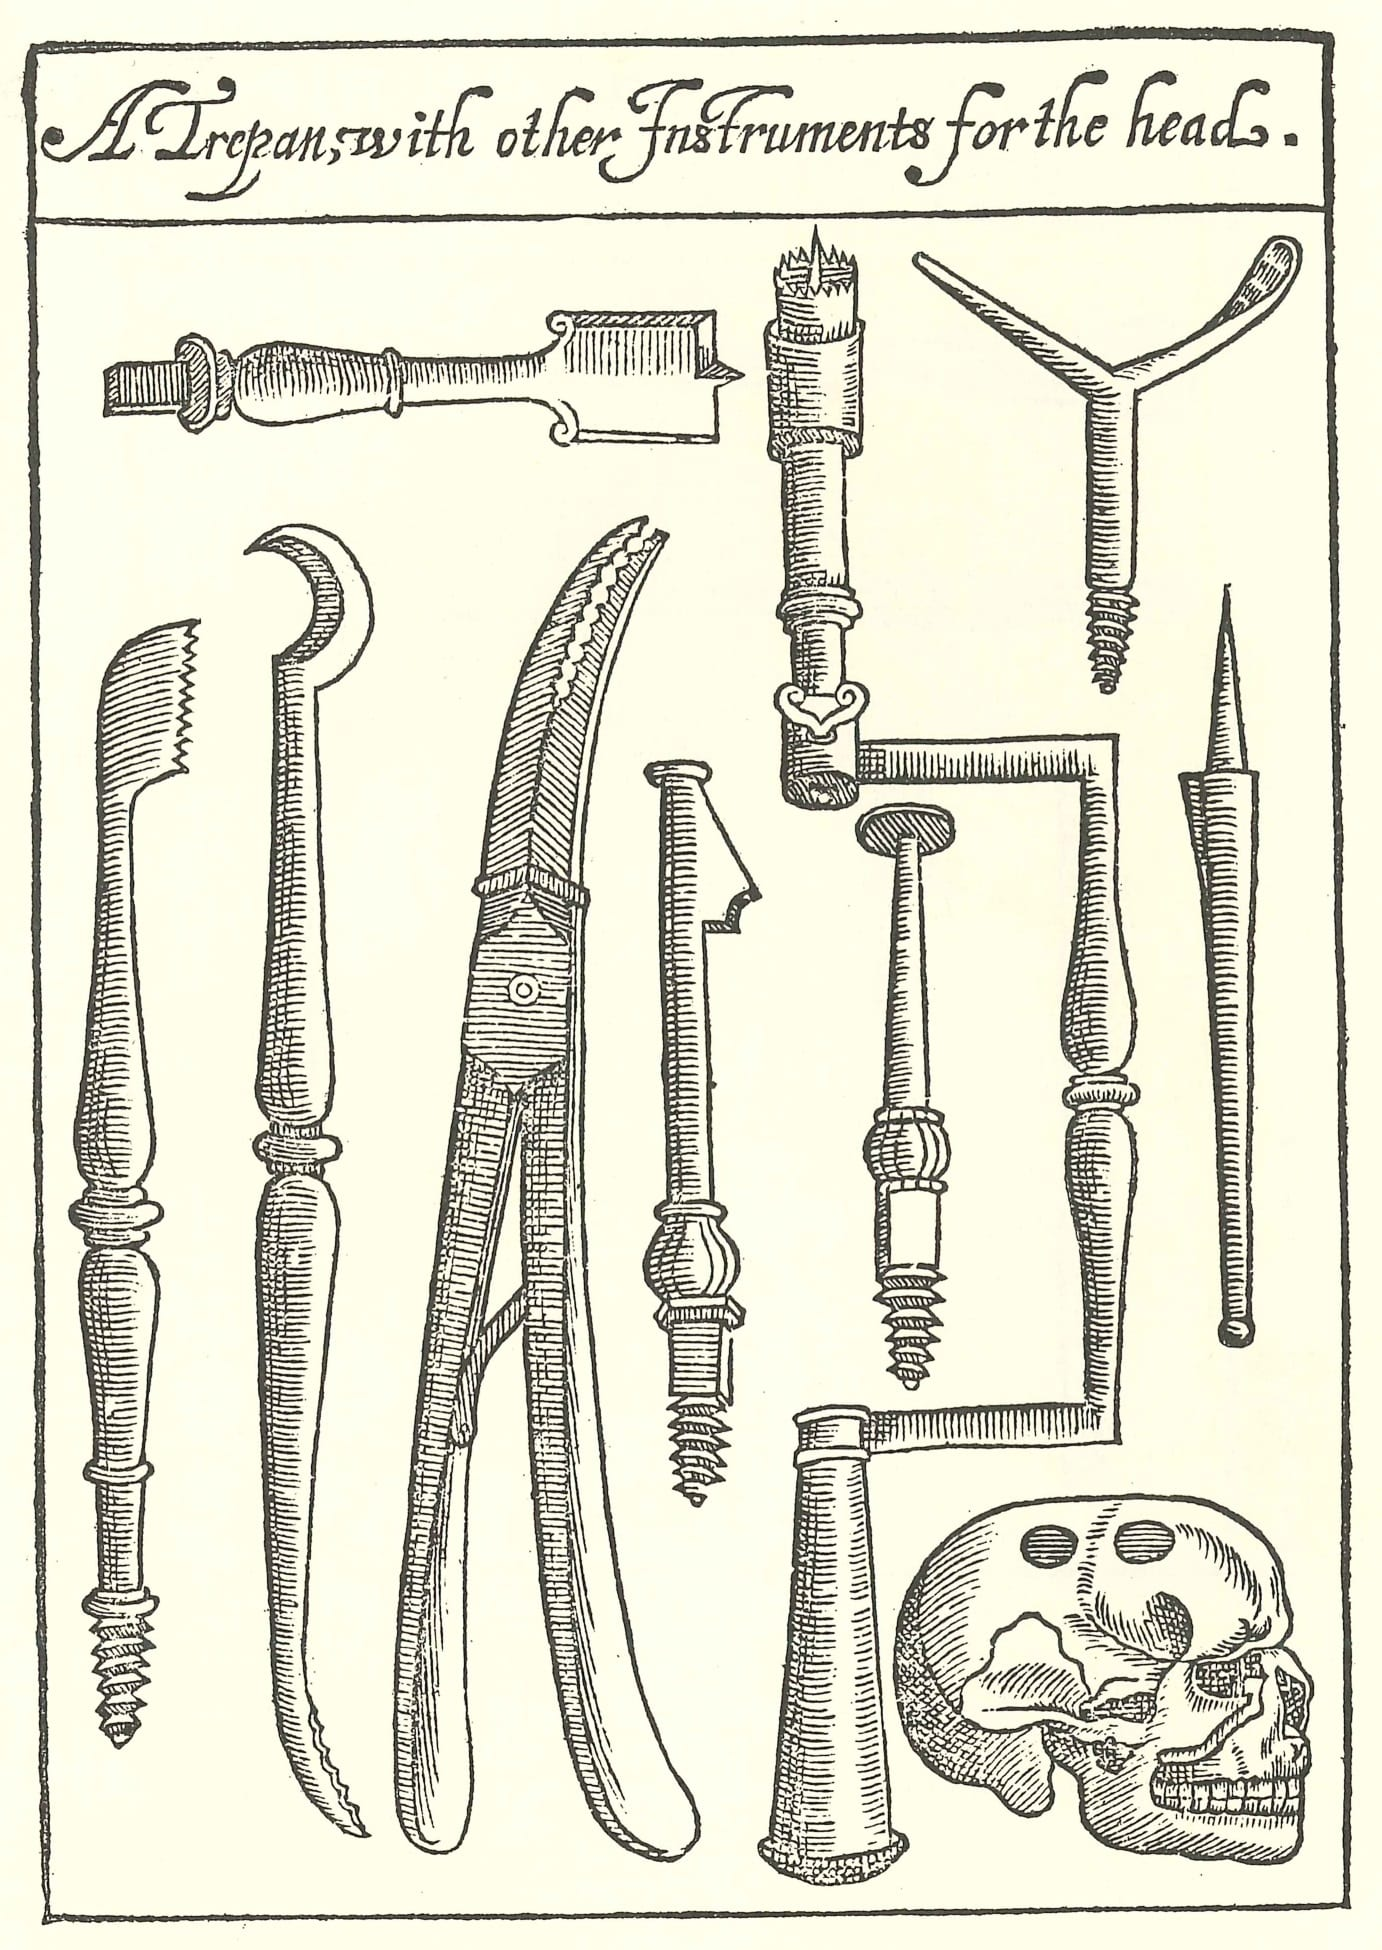 A trepan with other instruments for the head - Copy